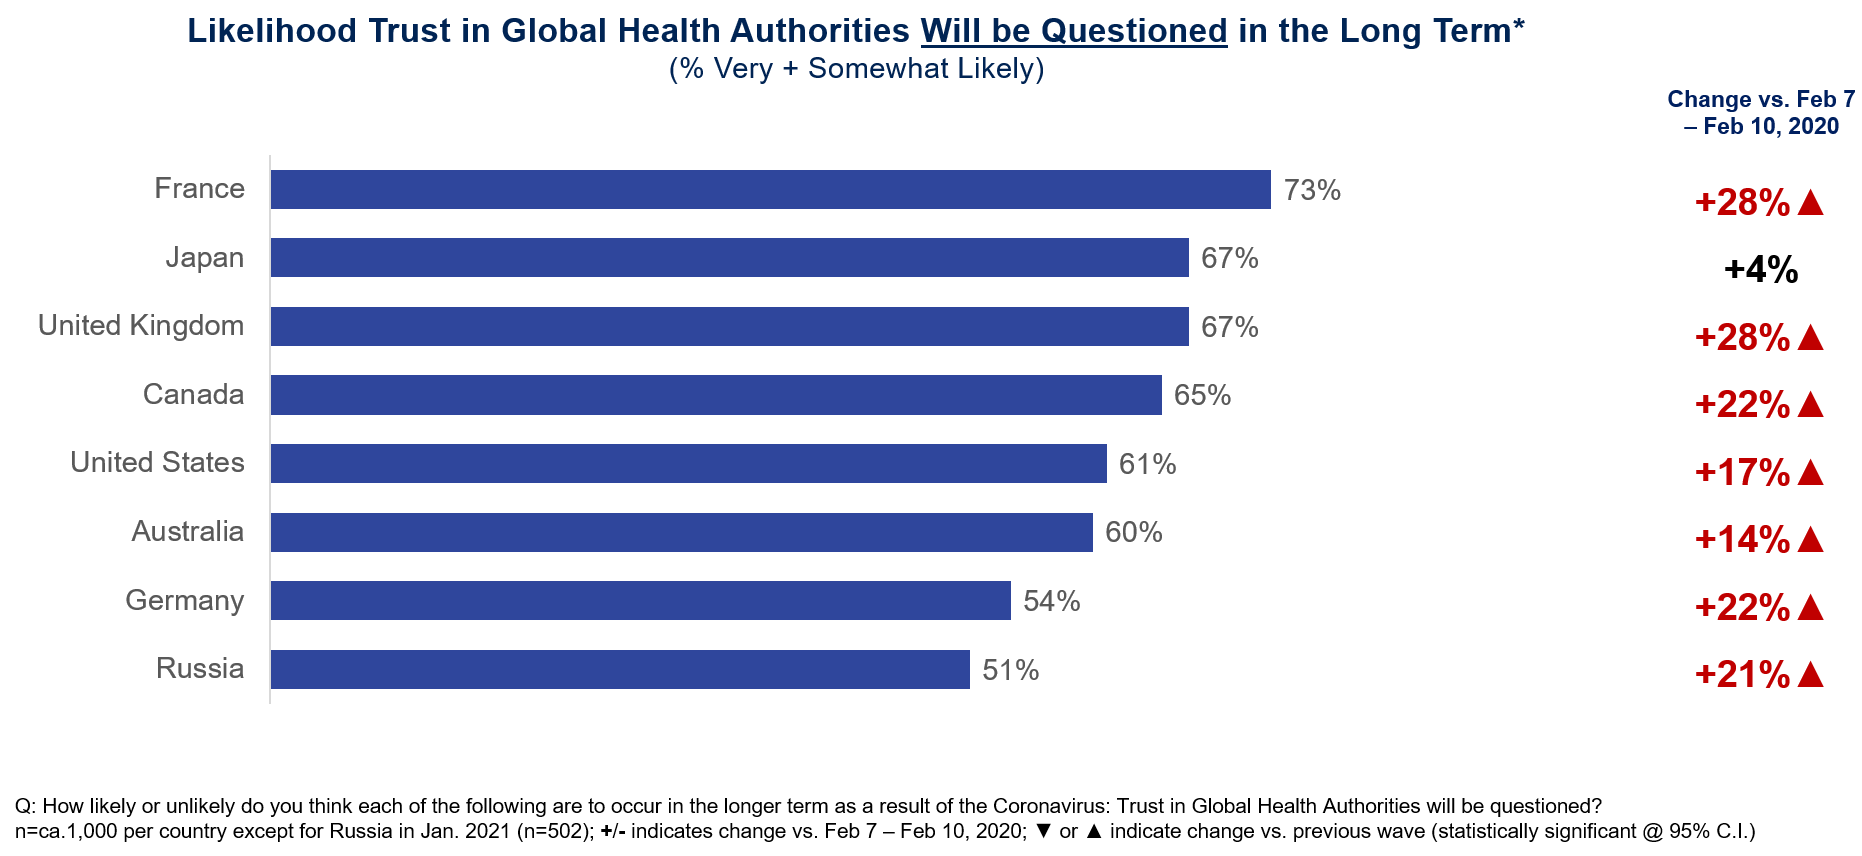 Likelihood Trust in Global Health Authorities Will be Questioned in the Long Term